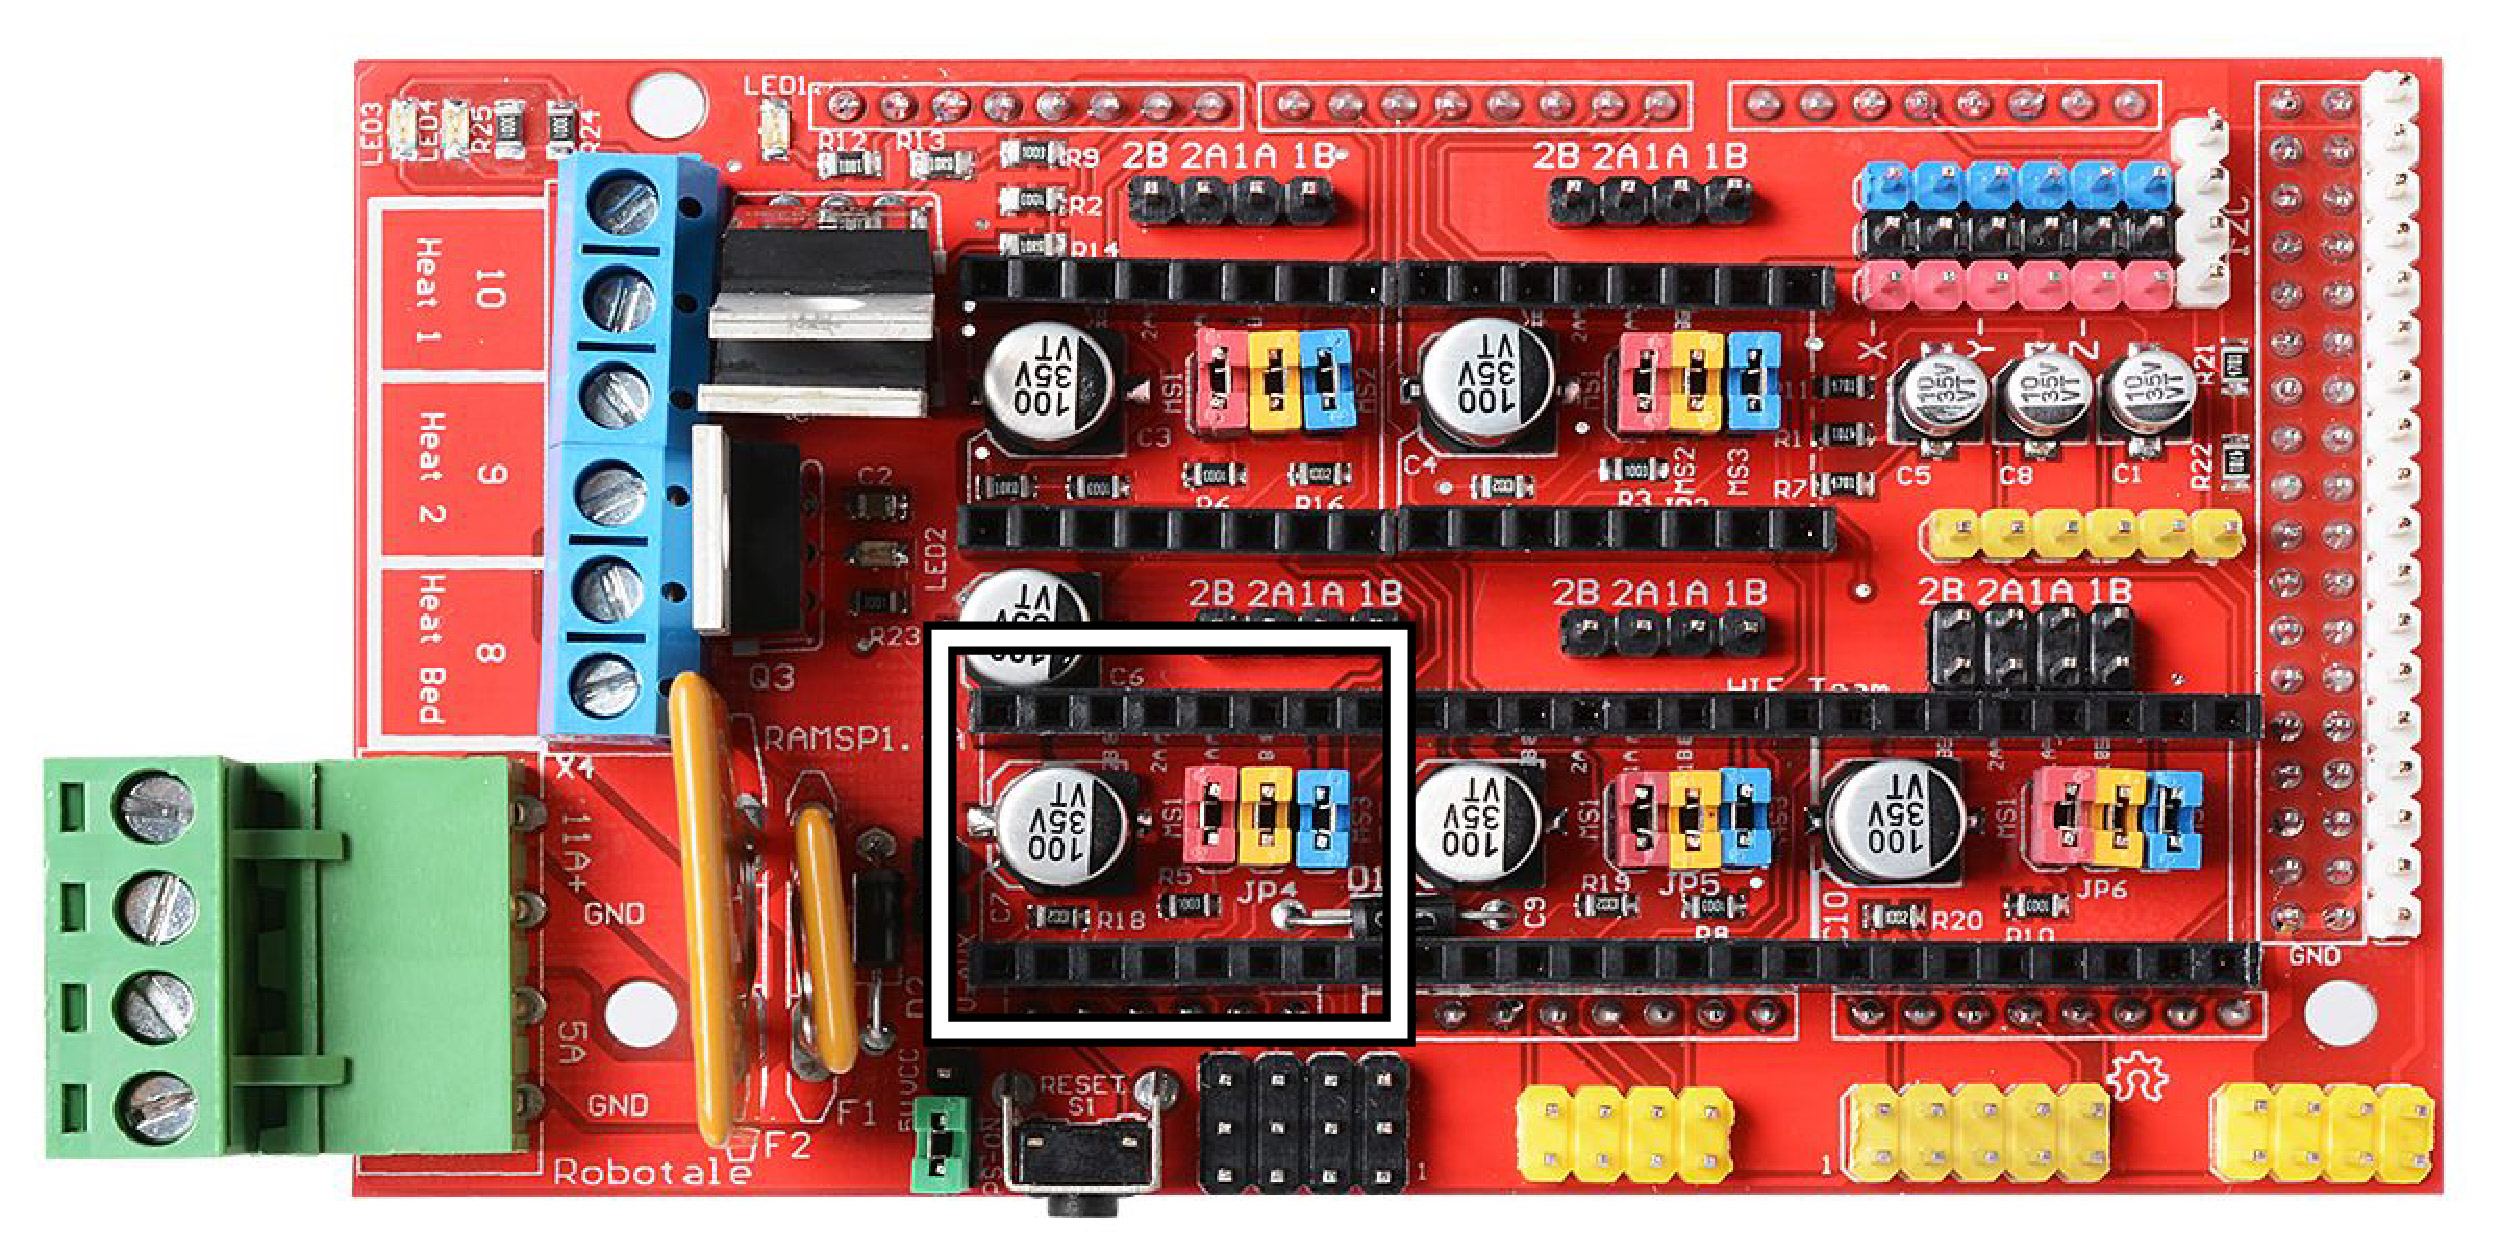 Ramps 1.4 - 3D Printer Controller Board - More Info Here